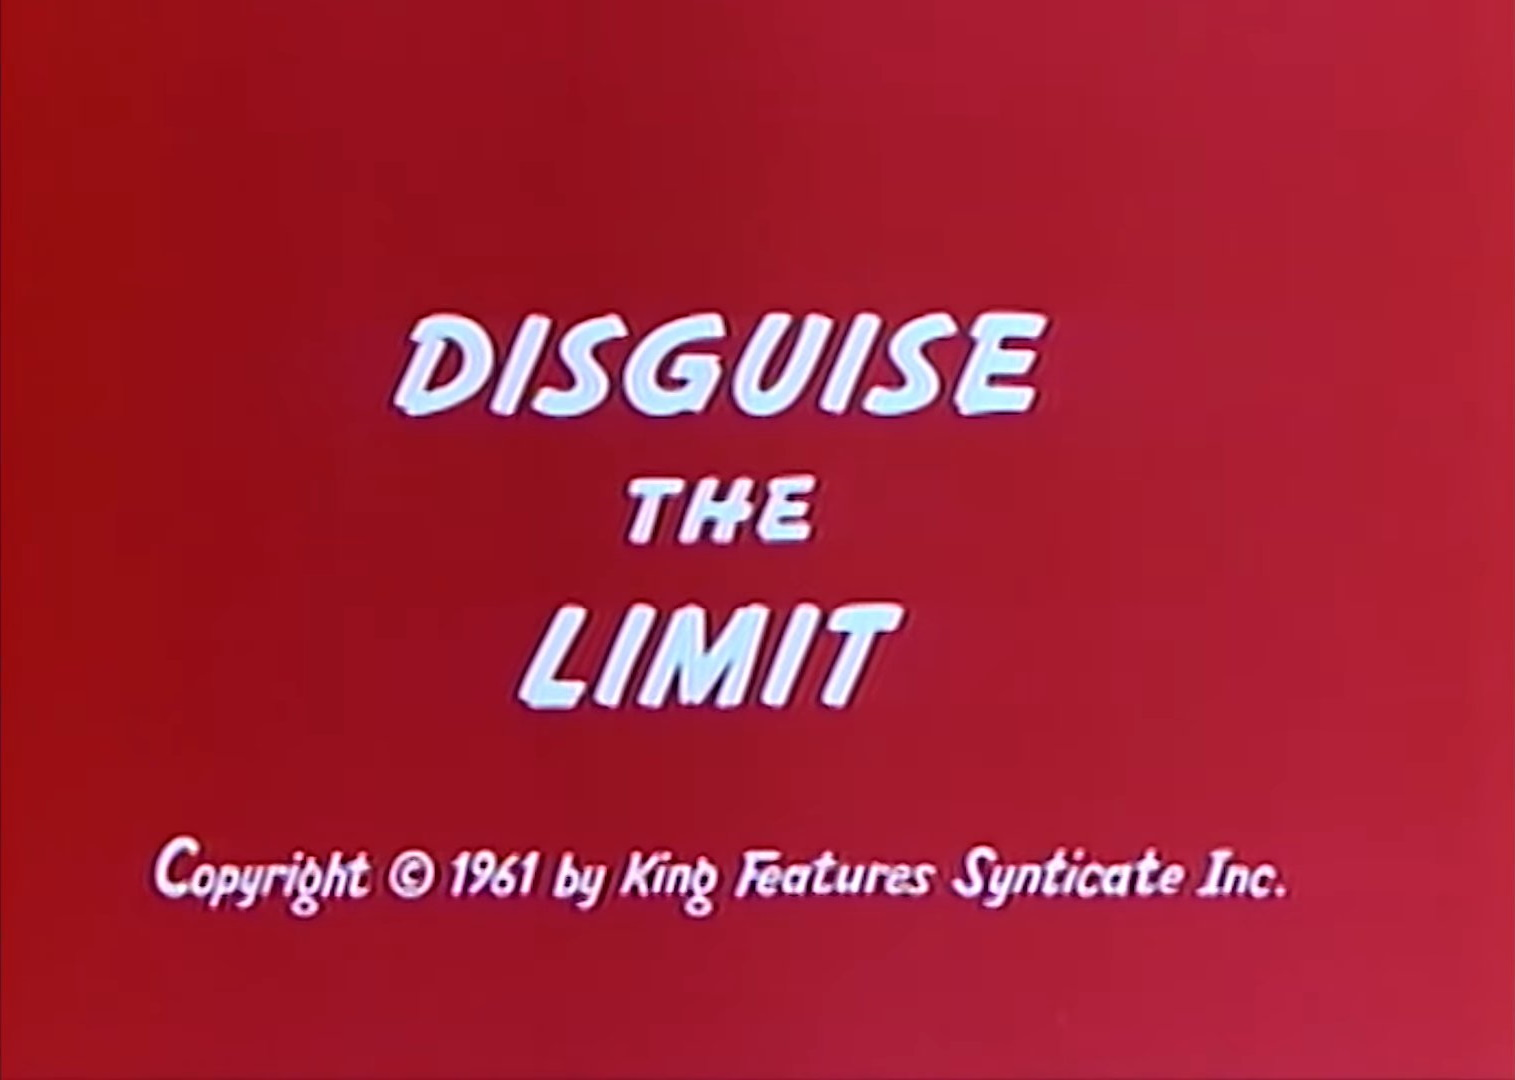 Disguise the Limit